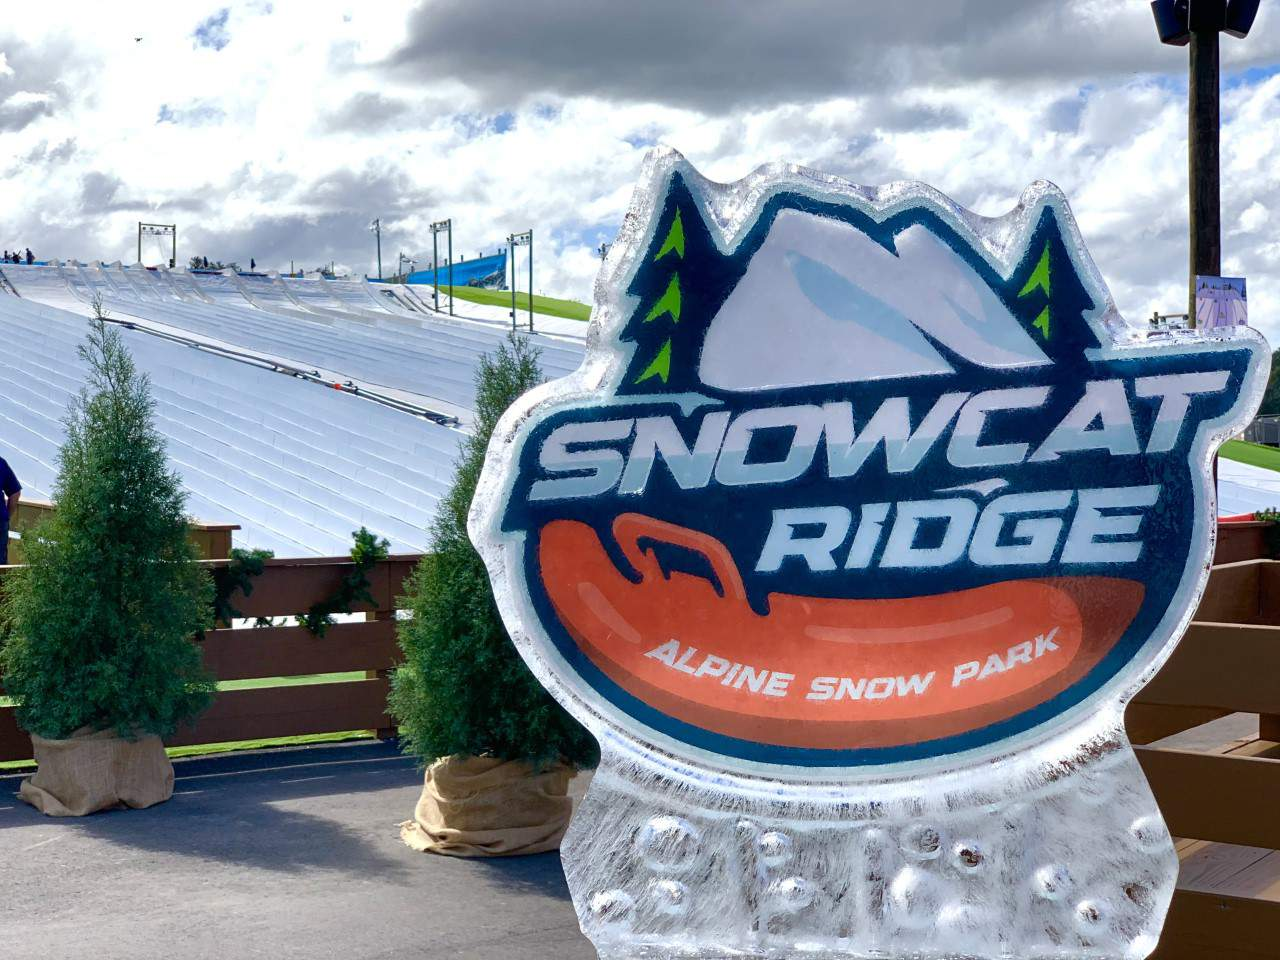 Authorities have closed Florida's first snow park for health and safety violations